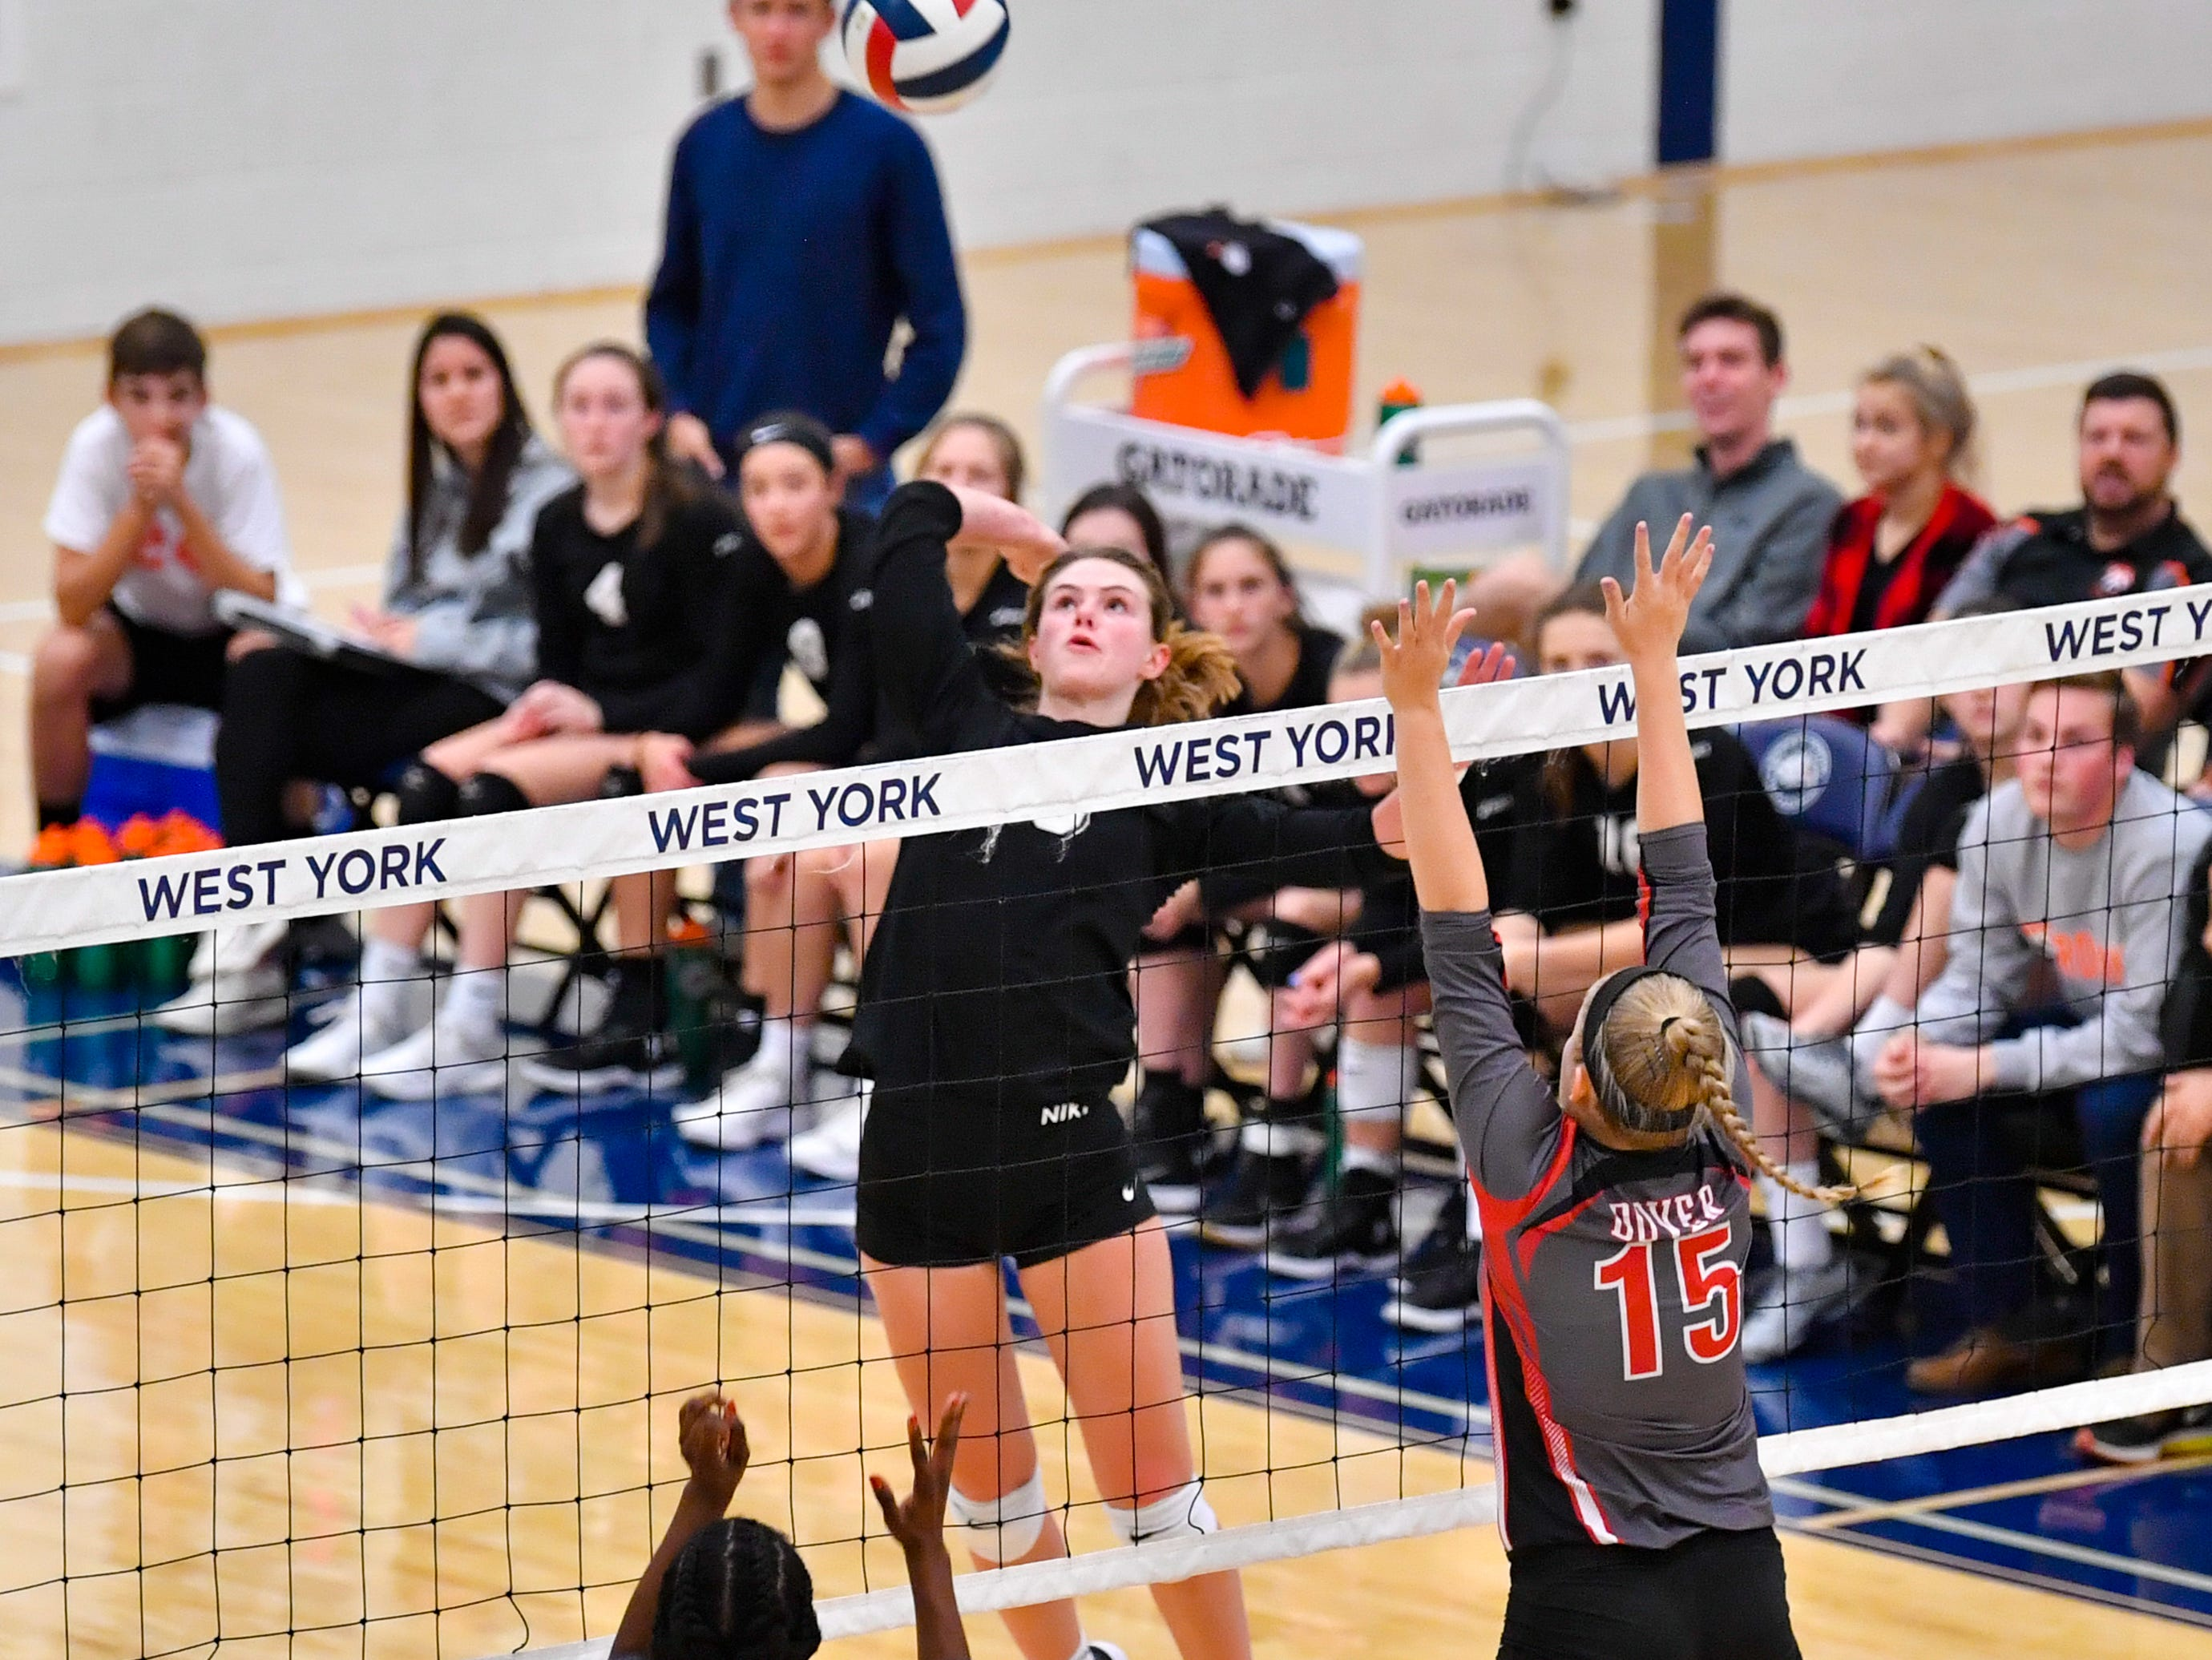 York Suburban's Elizabeth Mooney (13) rises up to spike the ball during the District 3 Class 3A girls' volleyball quarterfinals between Dover and York Suburban at West York High School, October 30, 2018. The Eagles defeated the Trojans 3-2.